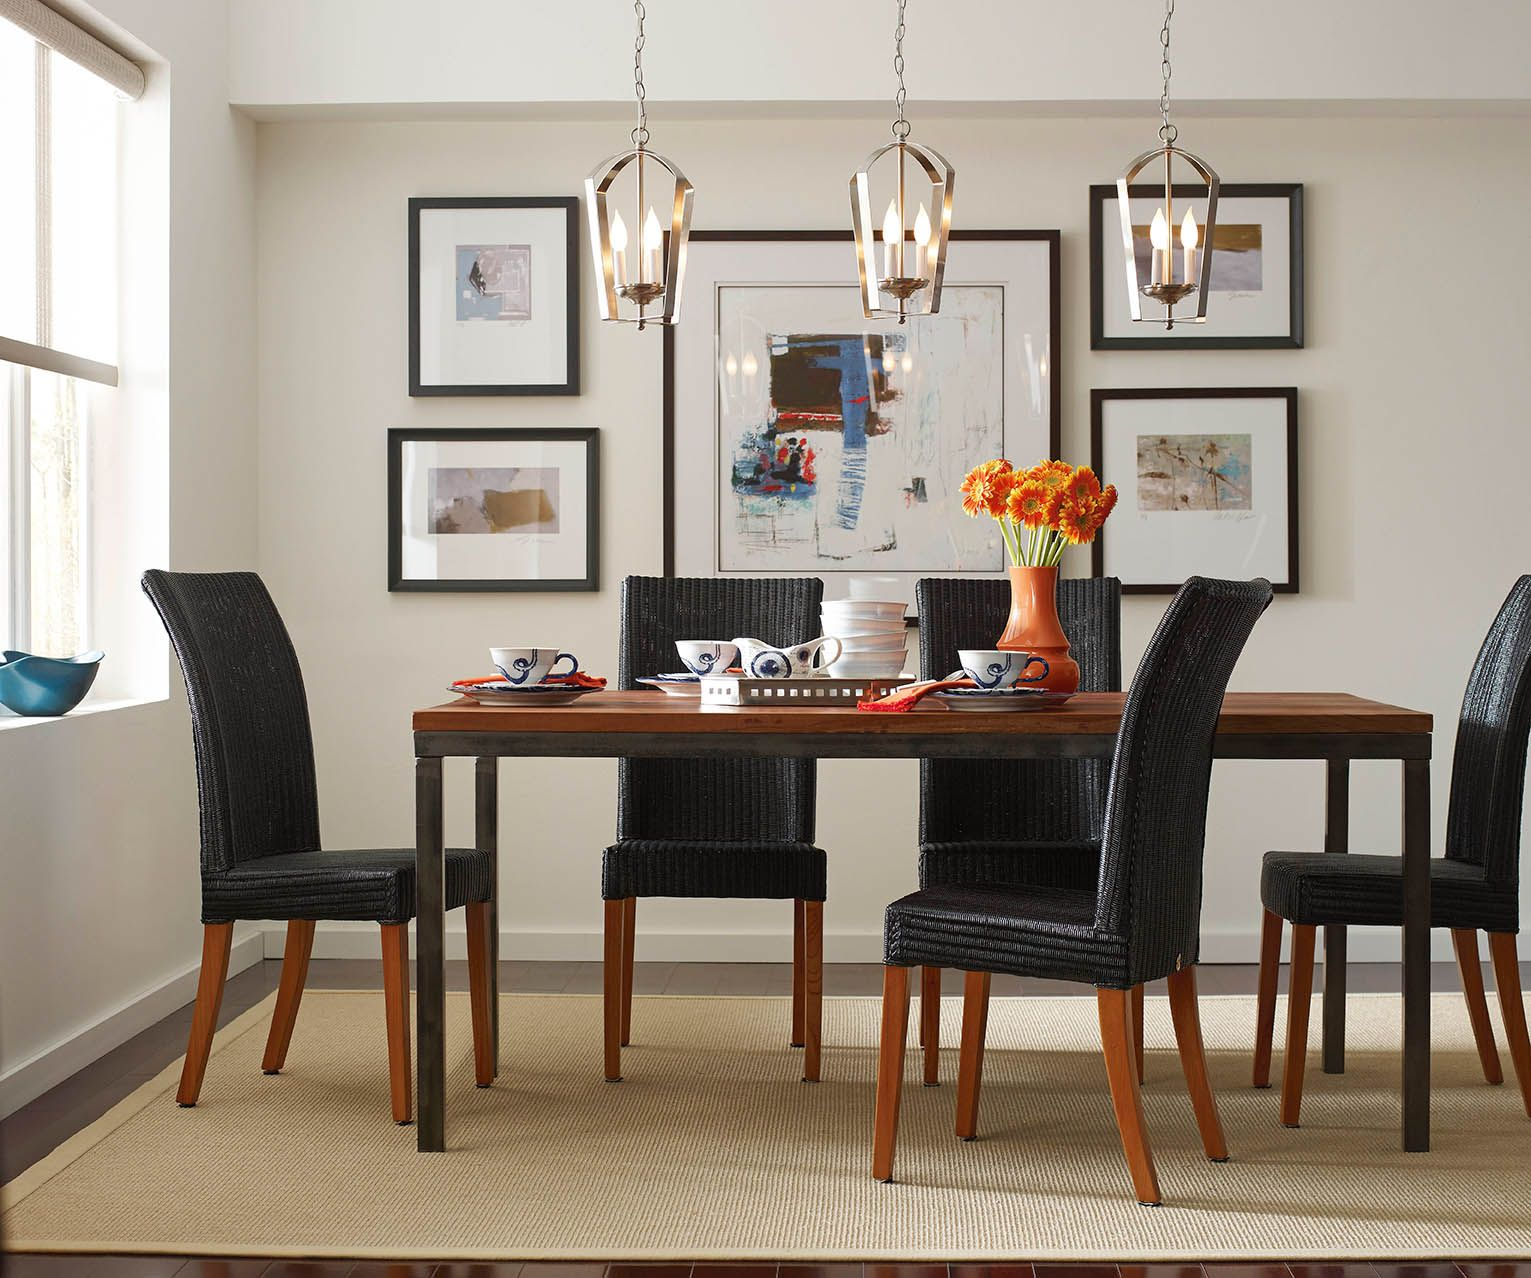 Image Result For 3 Drum Pendant Over Dining Table Modern Dining